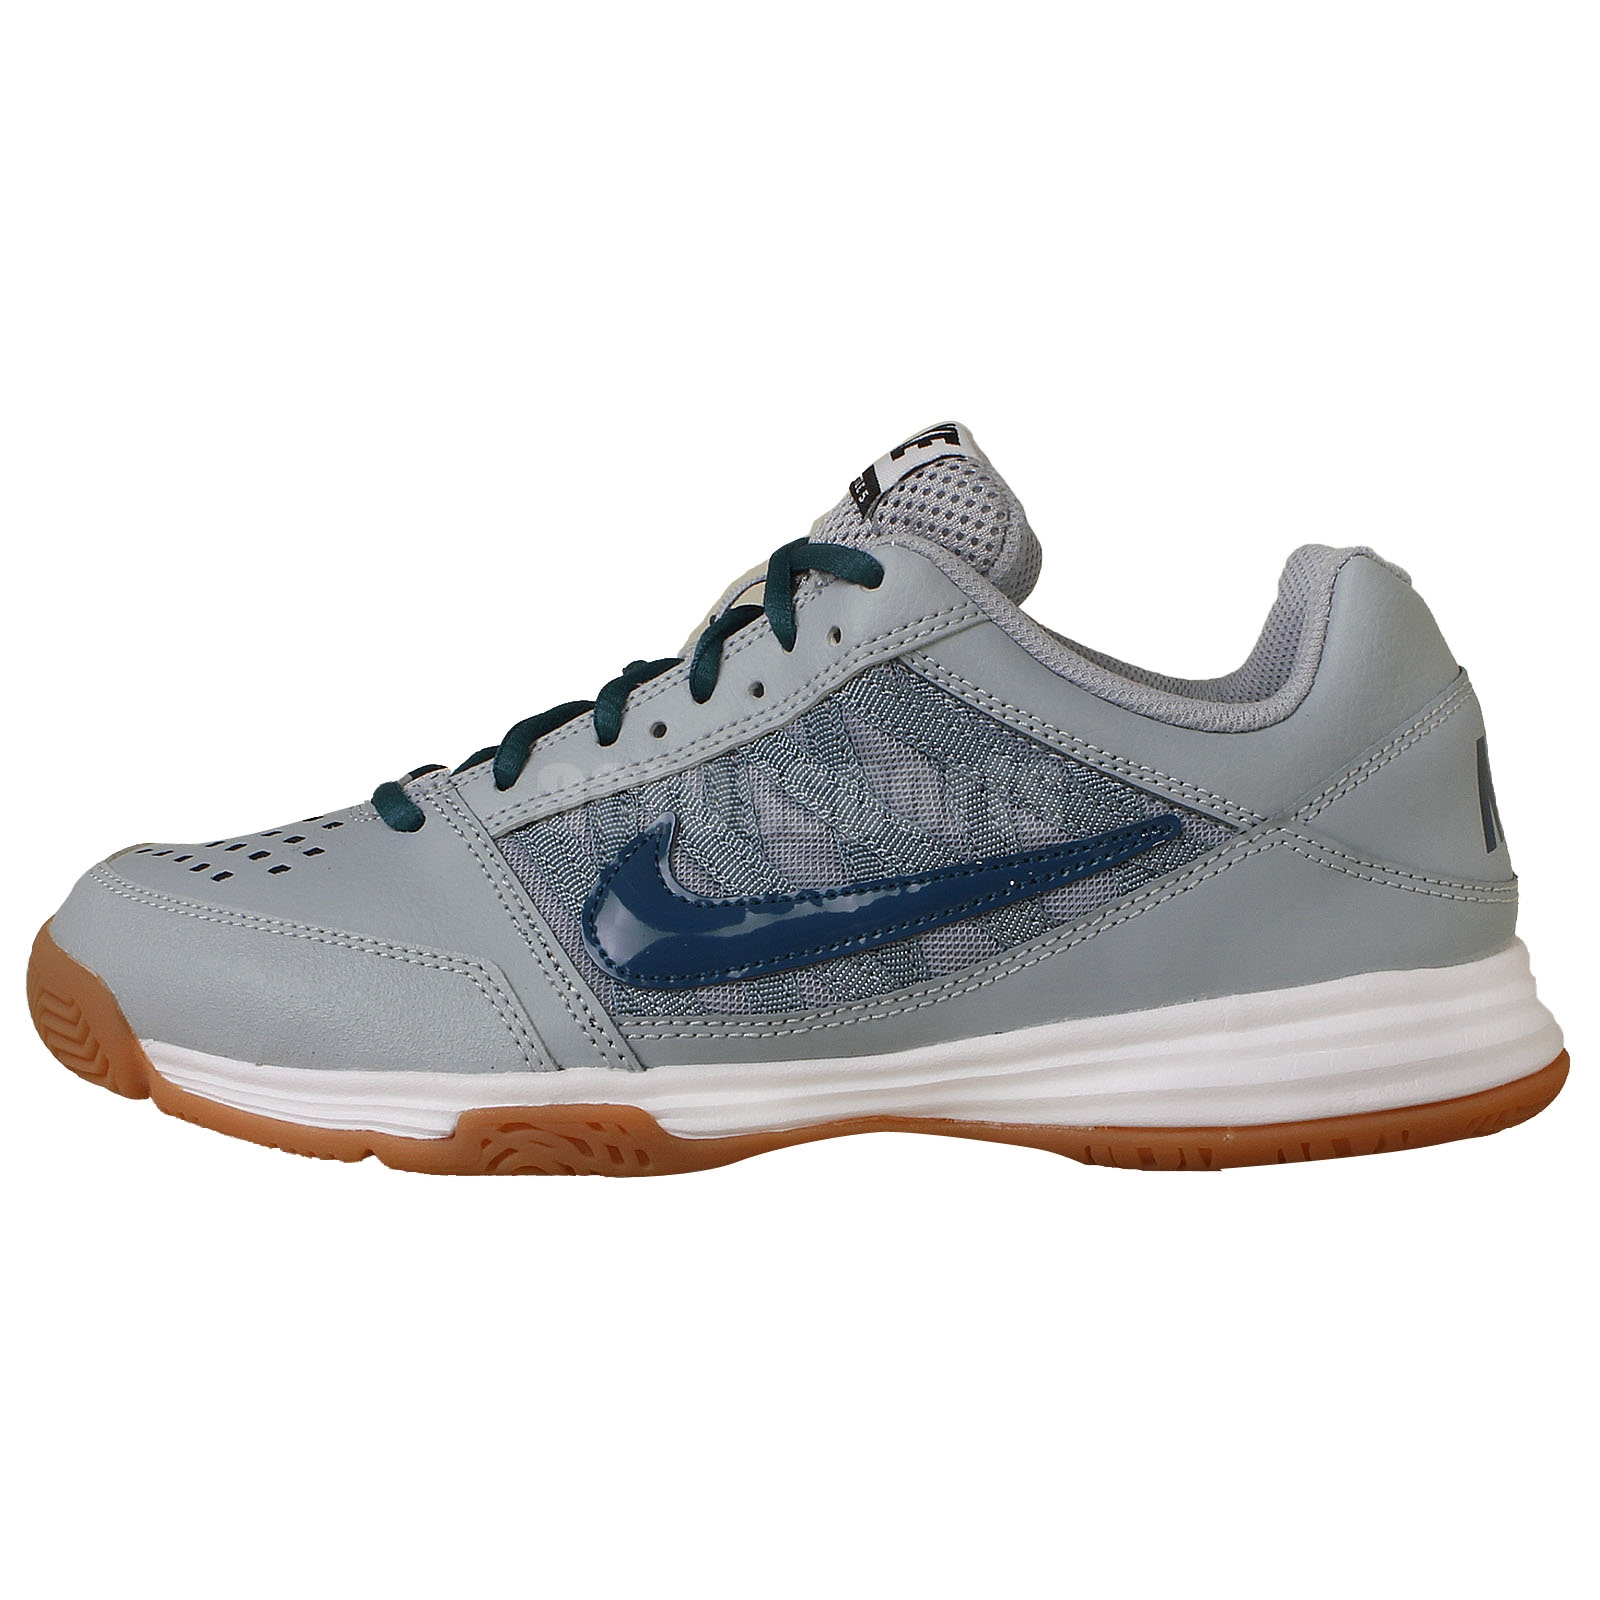 Fantastic Nike Zoom Hyperspike Volleyball Shoe For Women  JaShoes